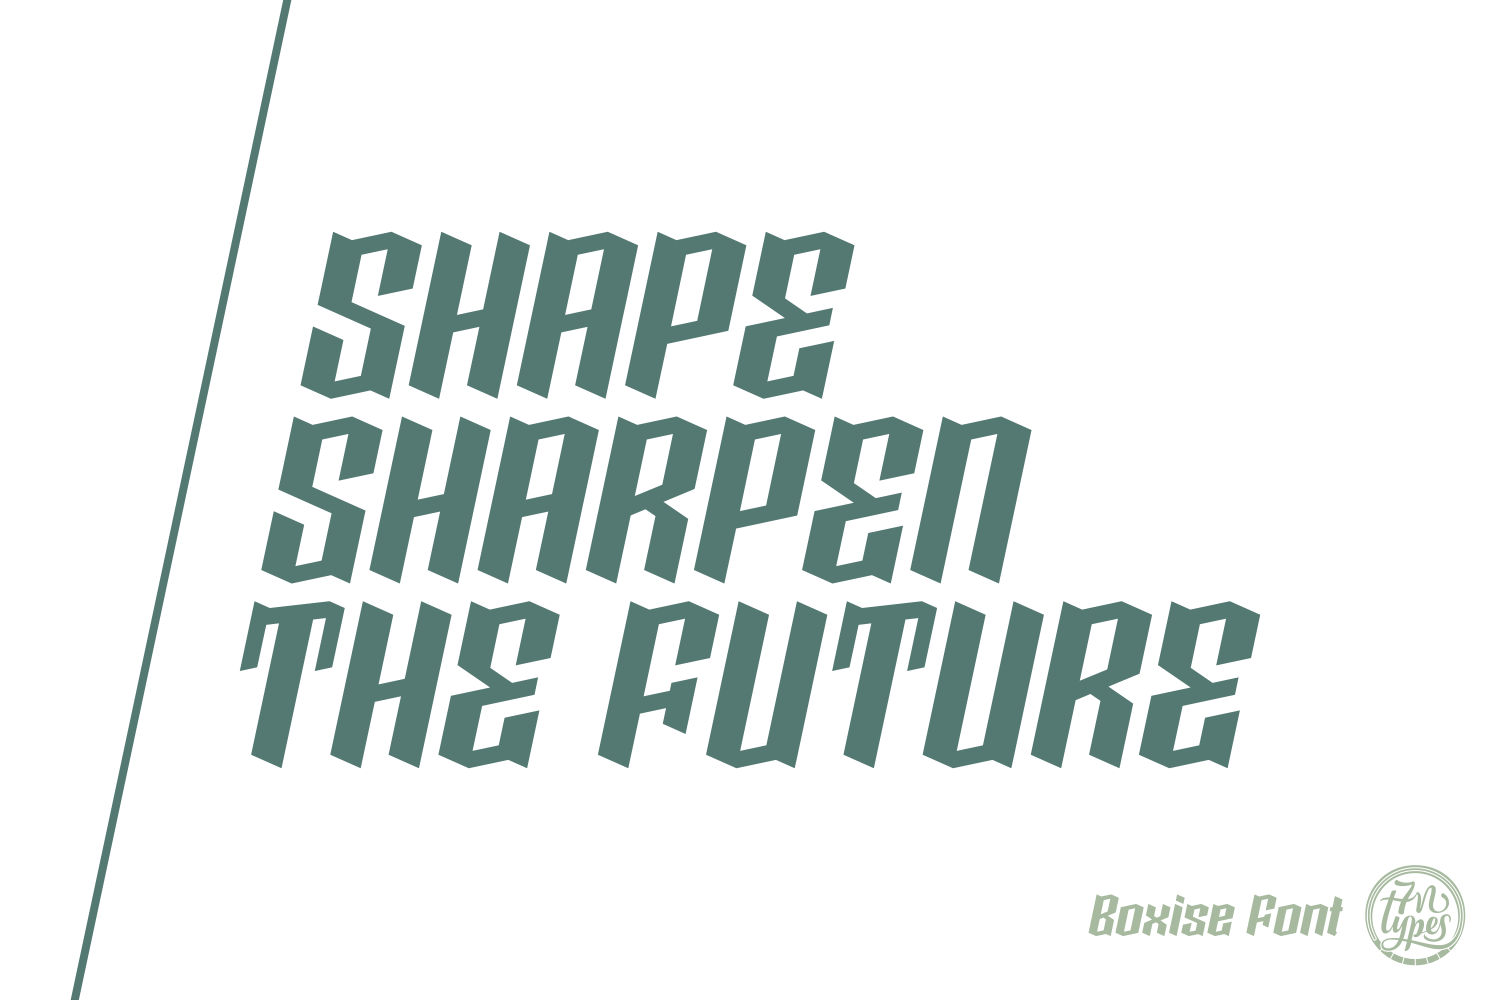 Boxise Font By Situjuh Image 2